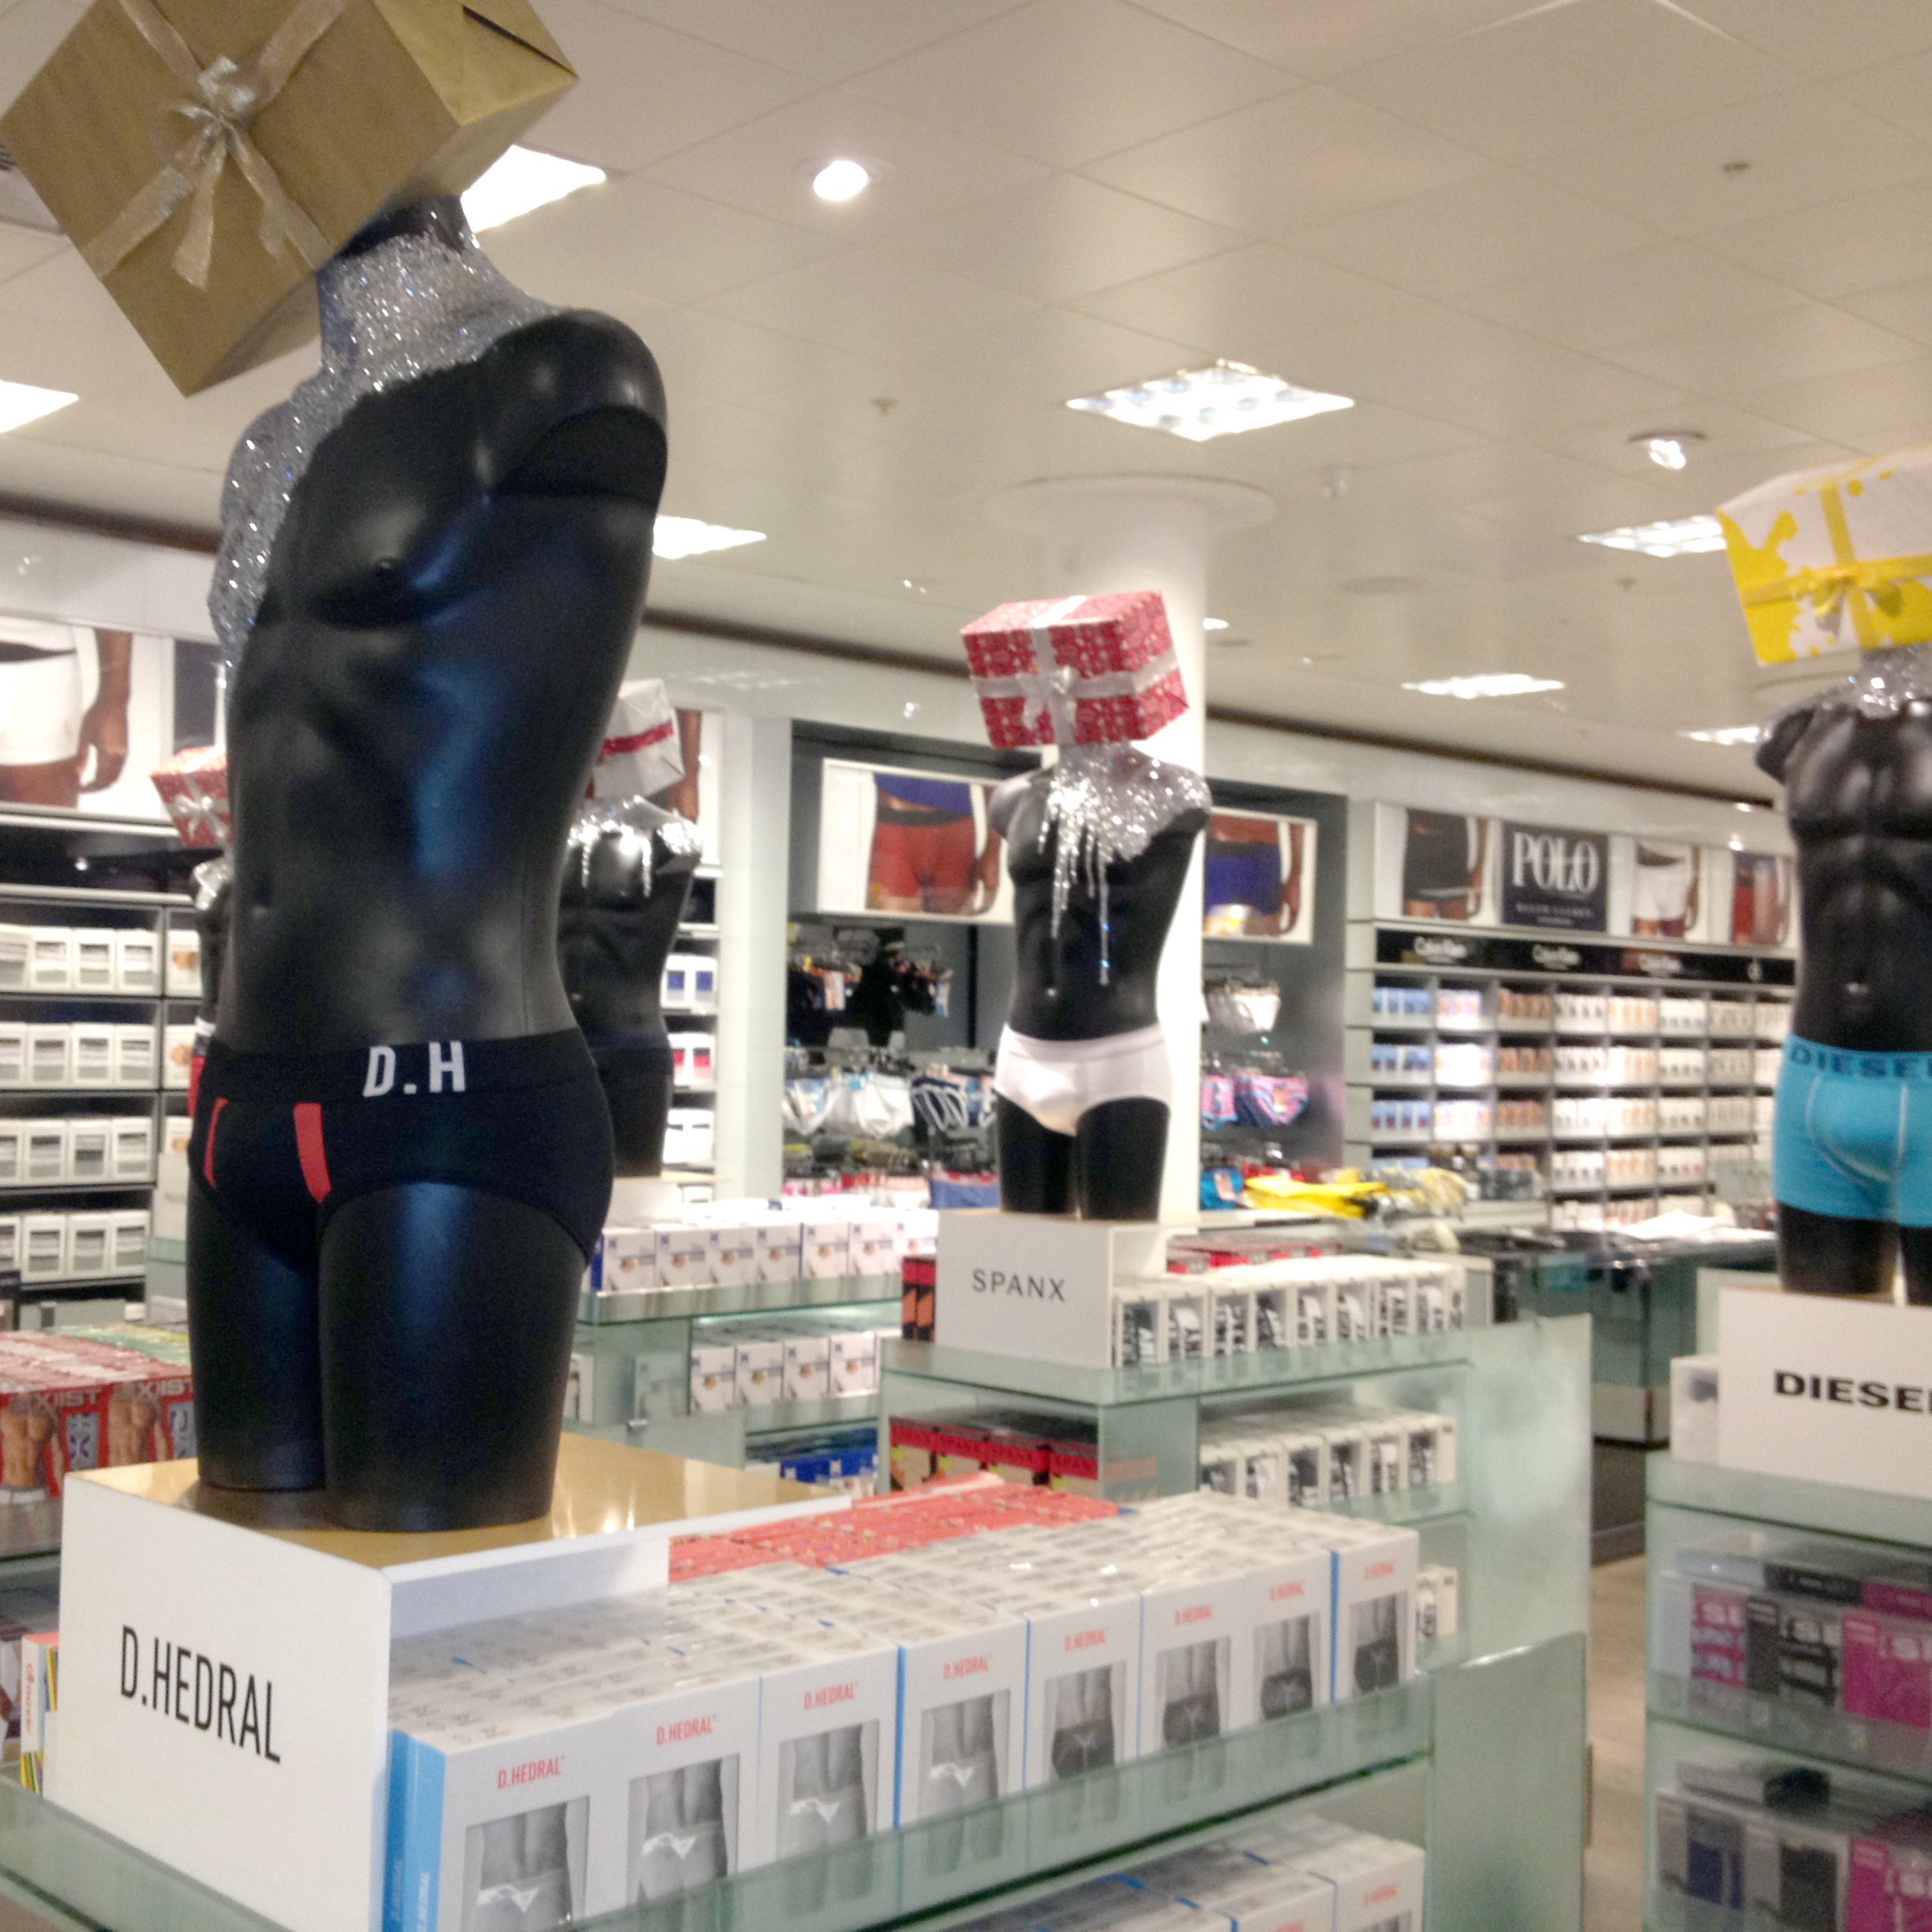 D.HEDRAL Launches Exclusively in Selfridges